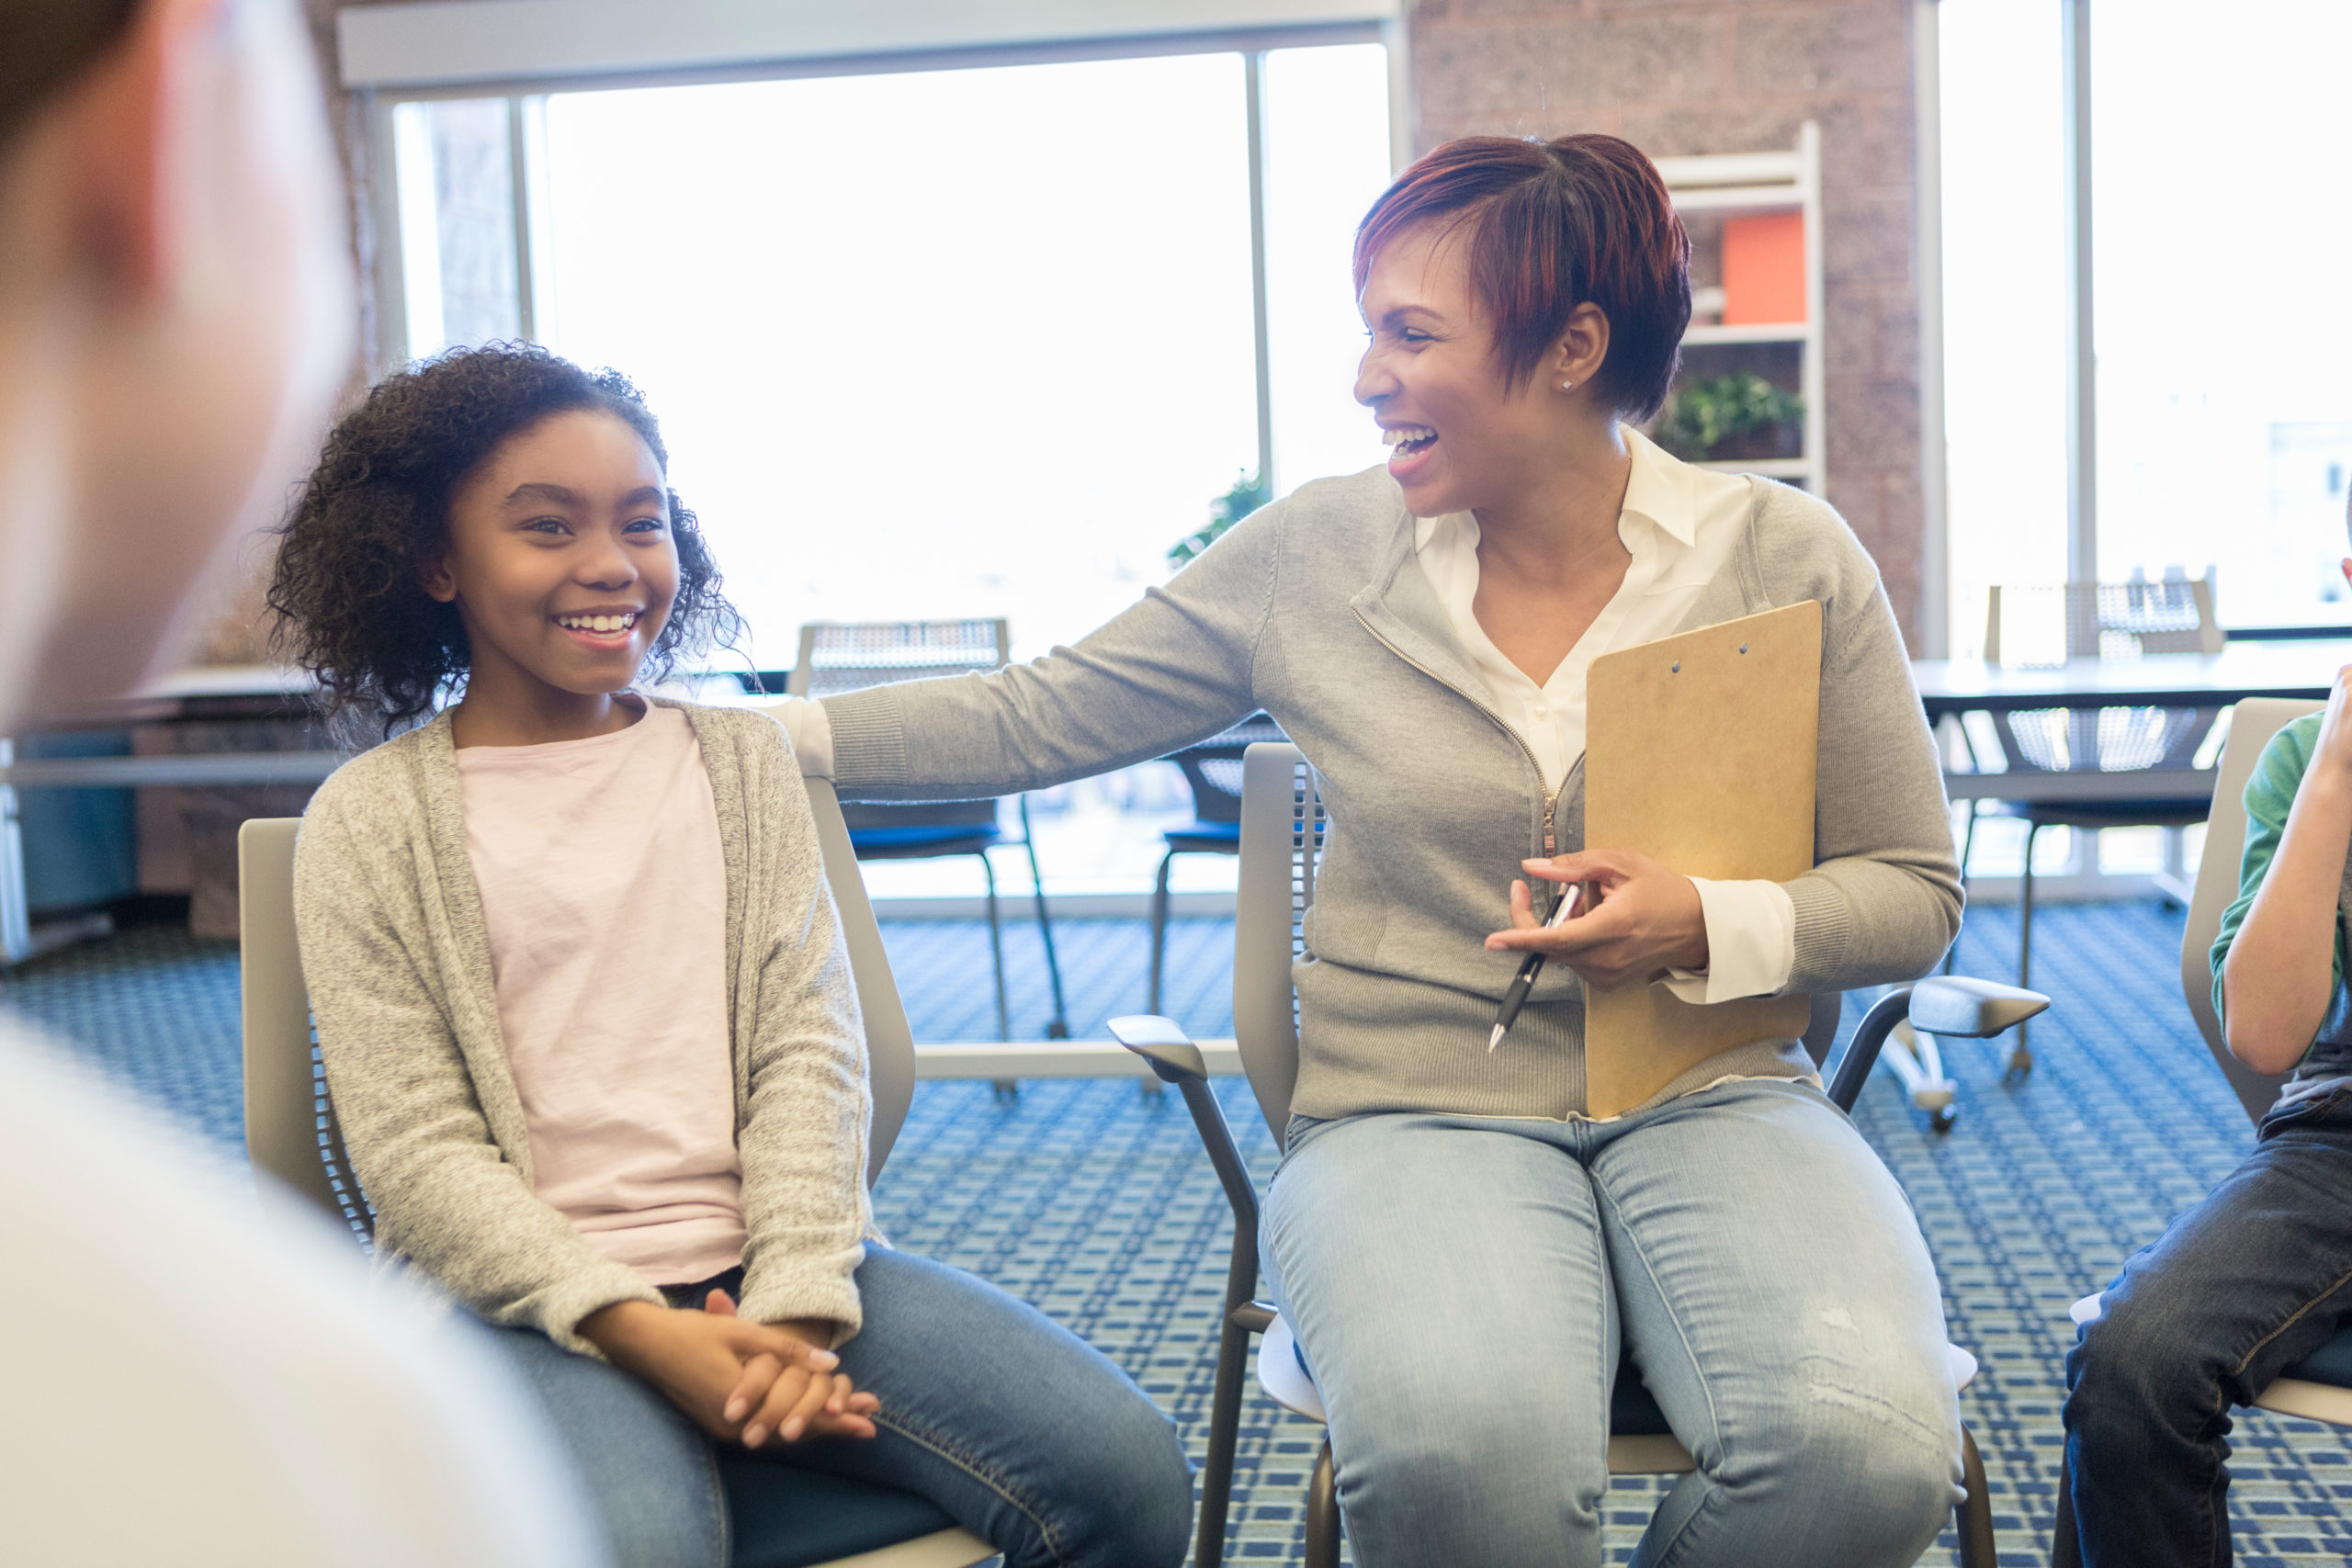 School counselor laughs with students